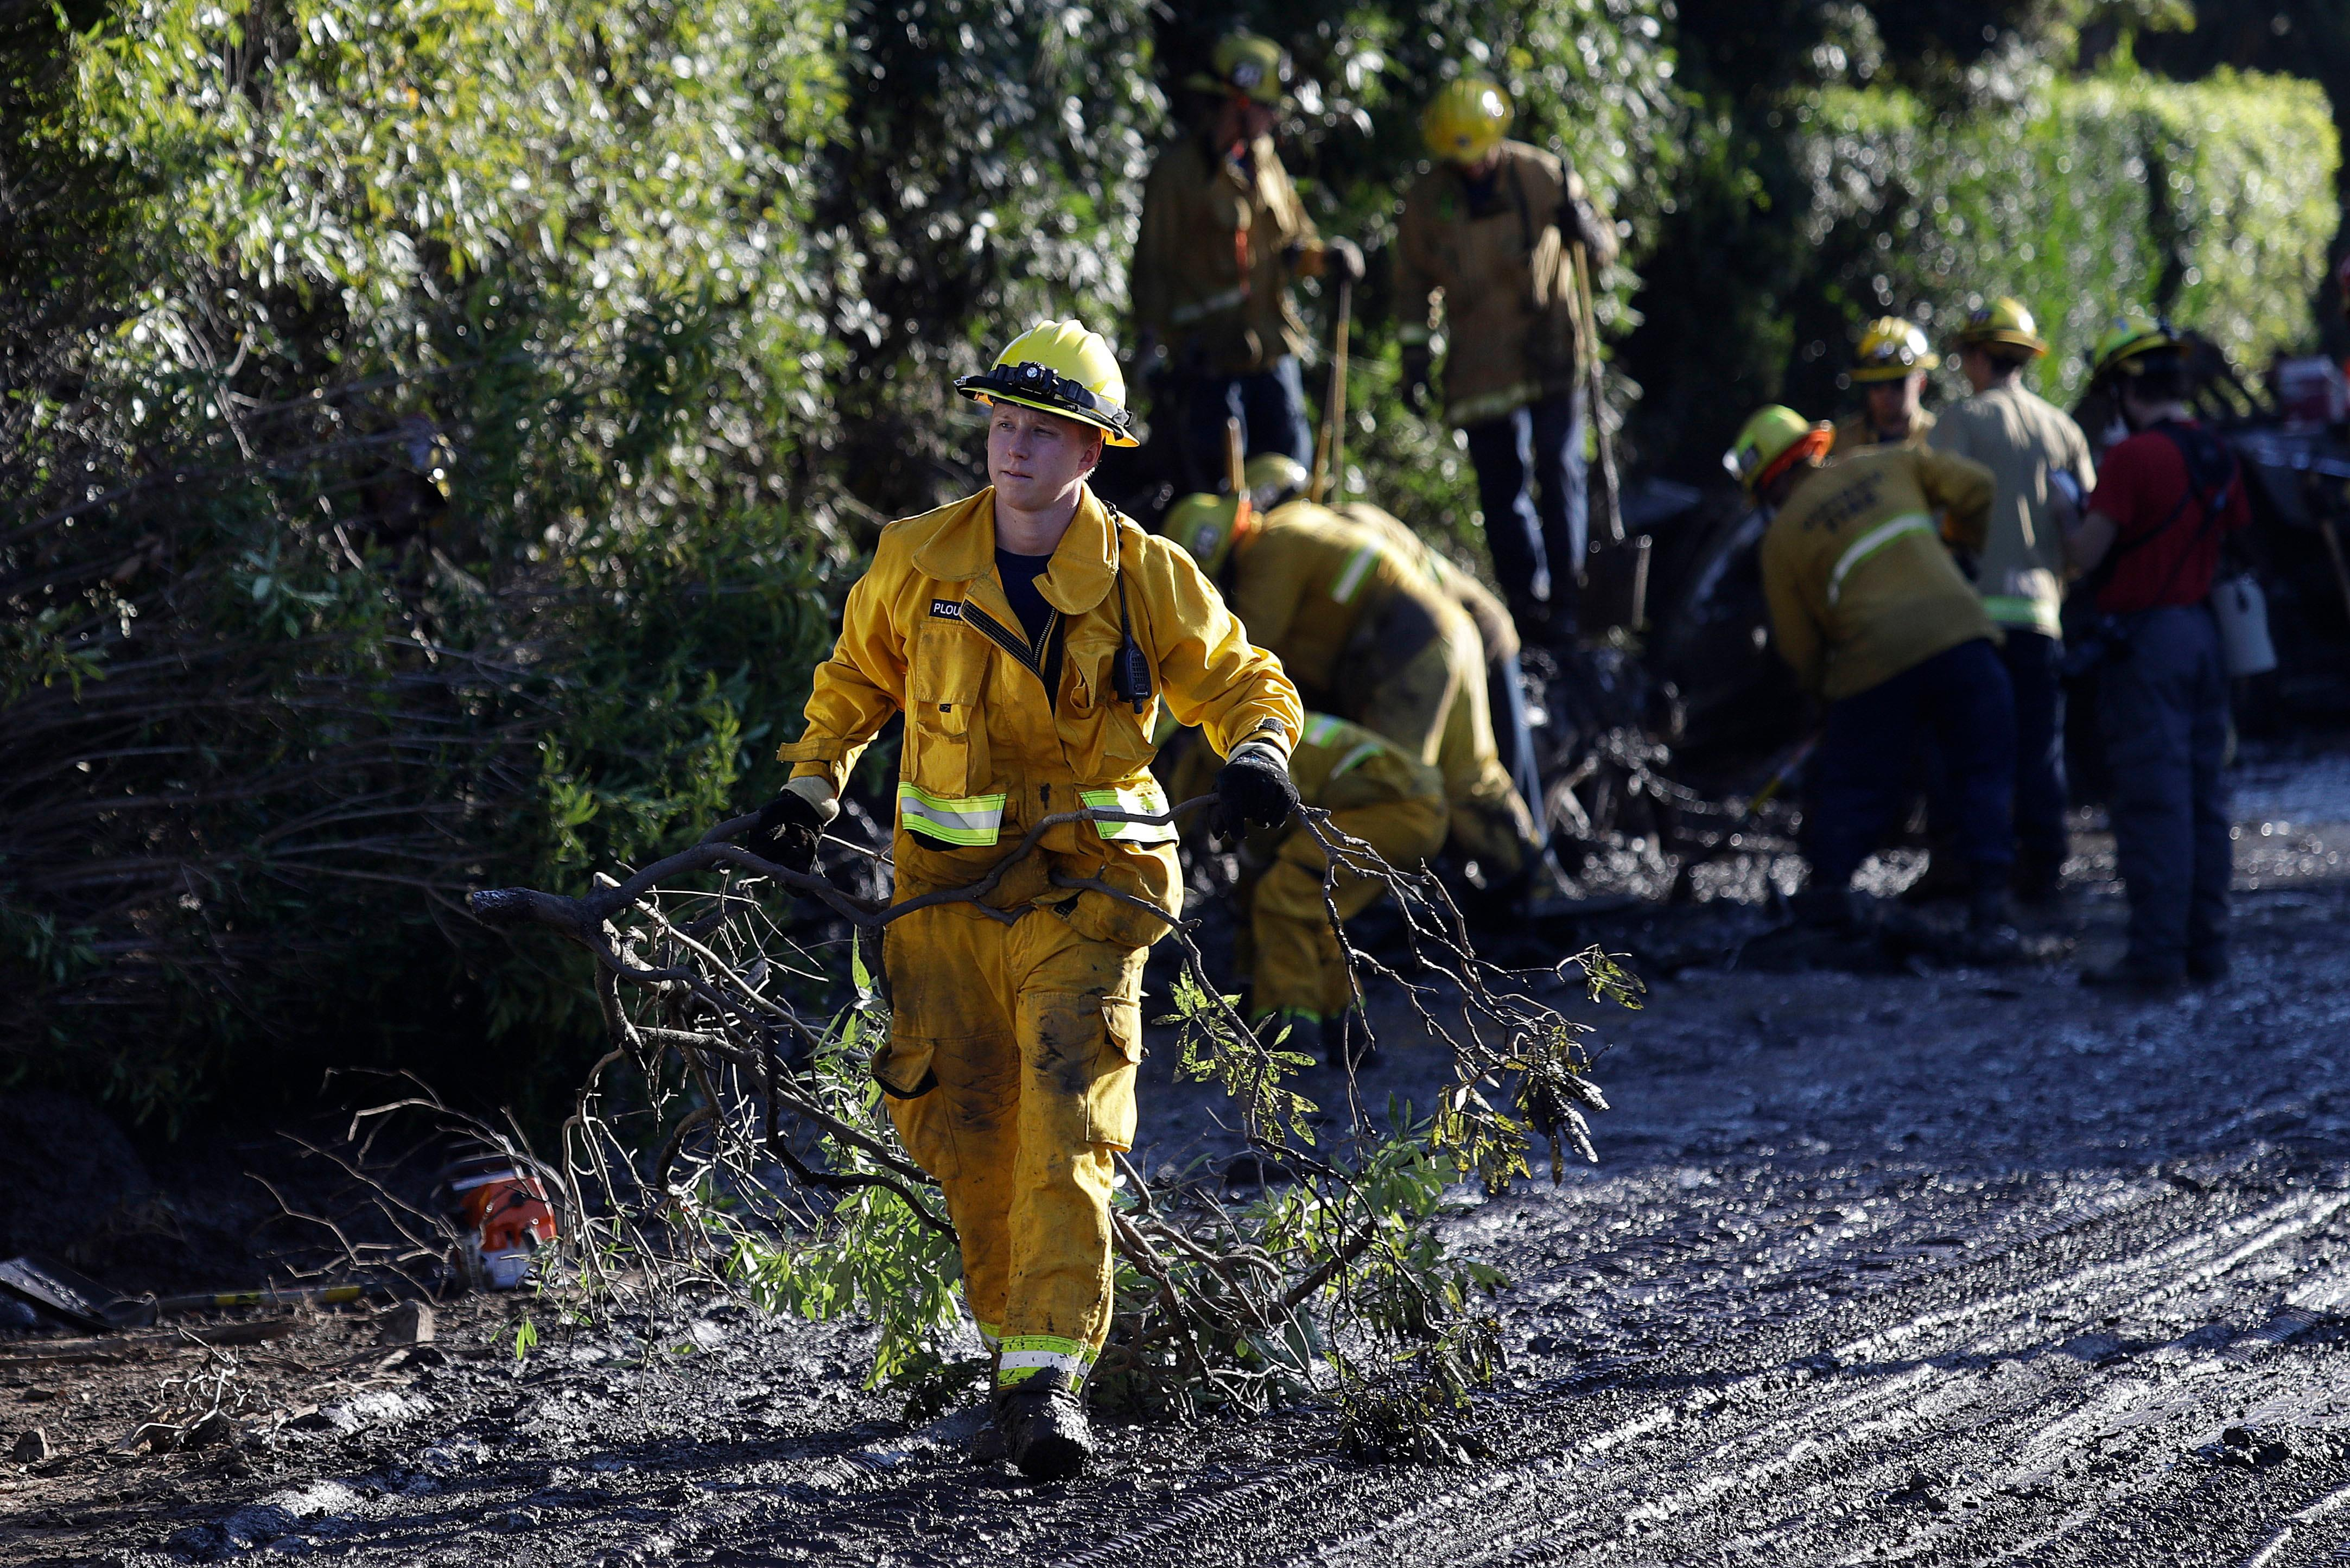 A firefighter cleans debris from an area damaged by storms in Montecito, Calif., Thursday, Jan. 11, 2018. Rescue workers slogged through knee-deep ooze and used long poles to probe for bodies Thursday as the search dragged on for victims of the mudslides that slammed this wealthy coastal town. (AP Photo/Marcio Jose Sanchez)